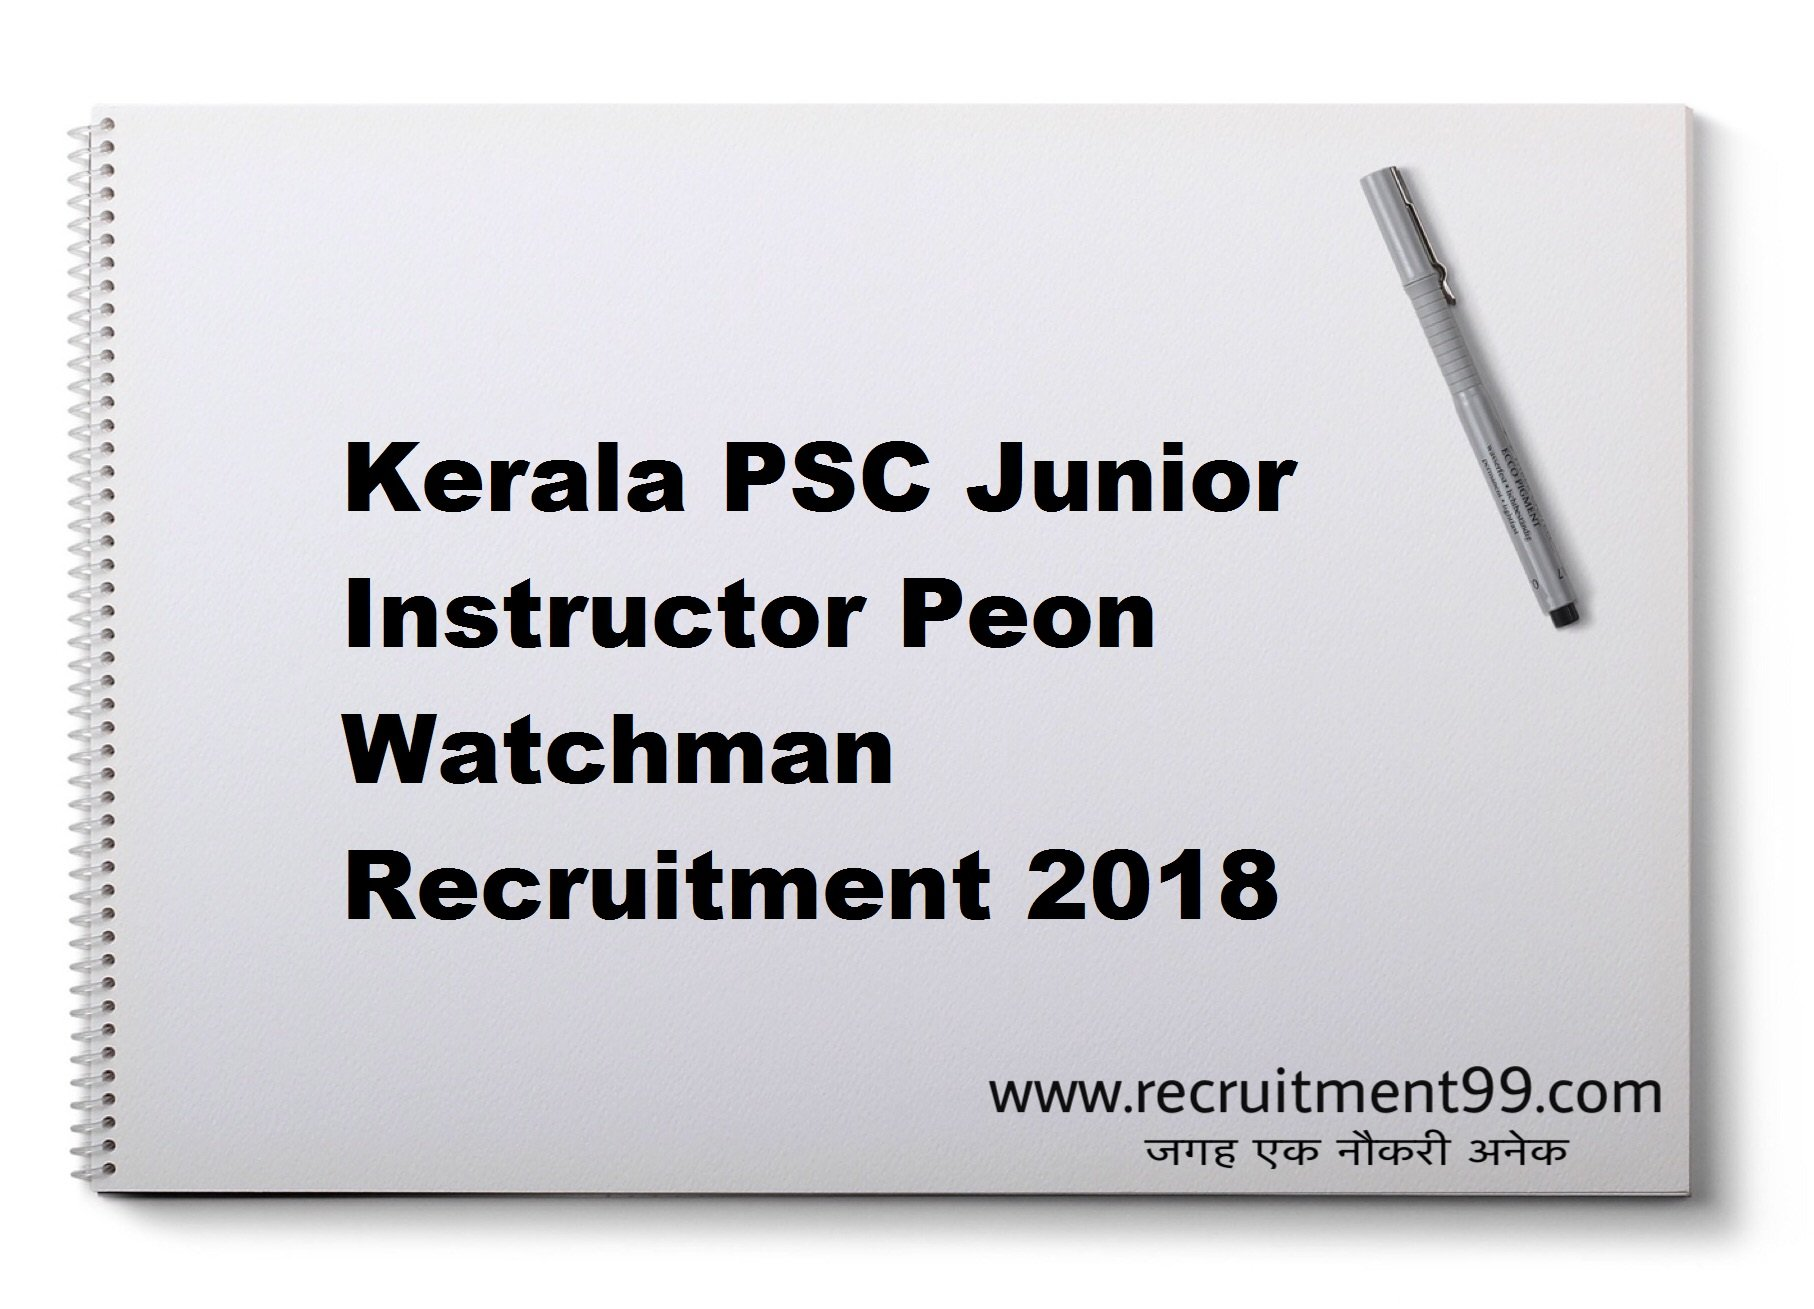 Kerala PSC Junior Instructor Peon Watchman Recruitment Admit Card Result 2018